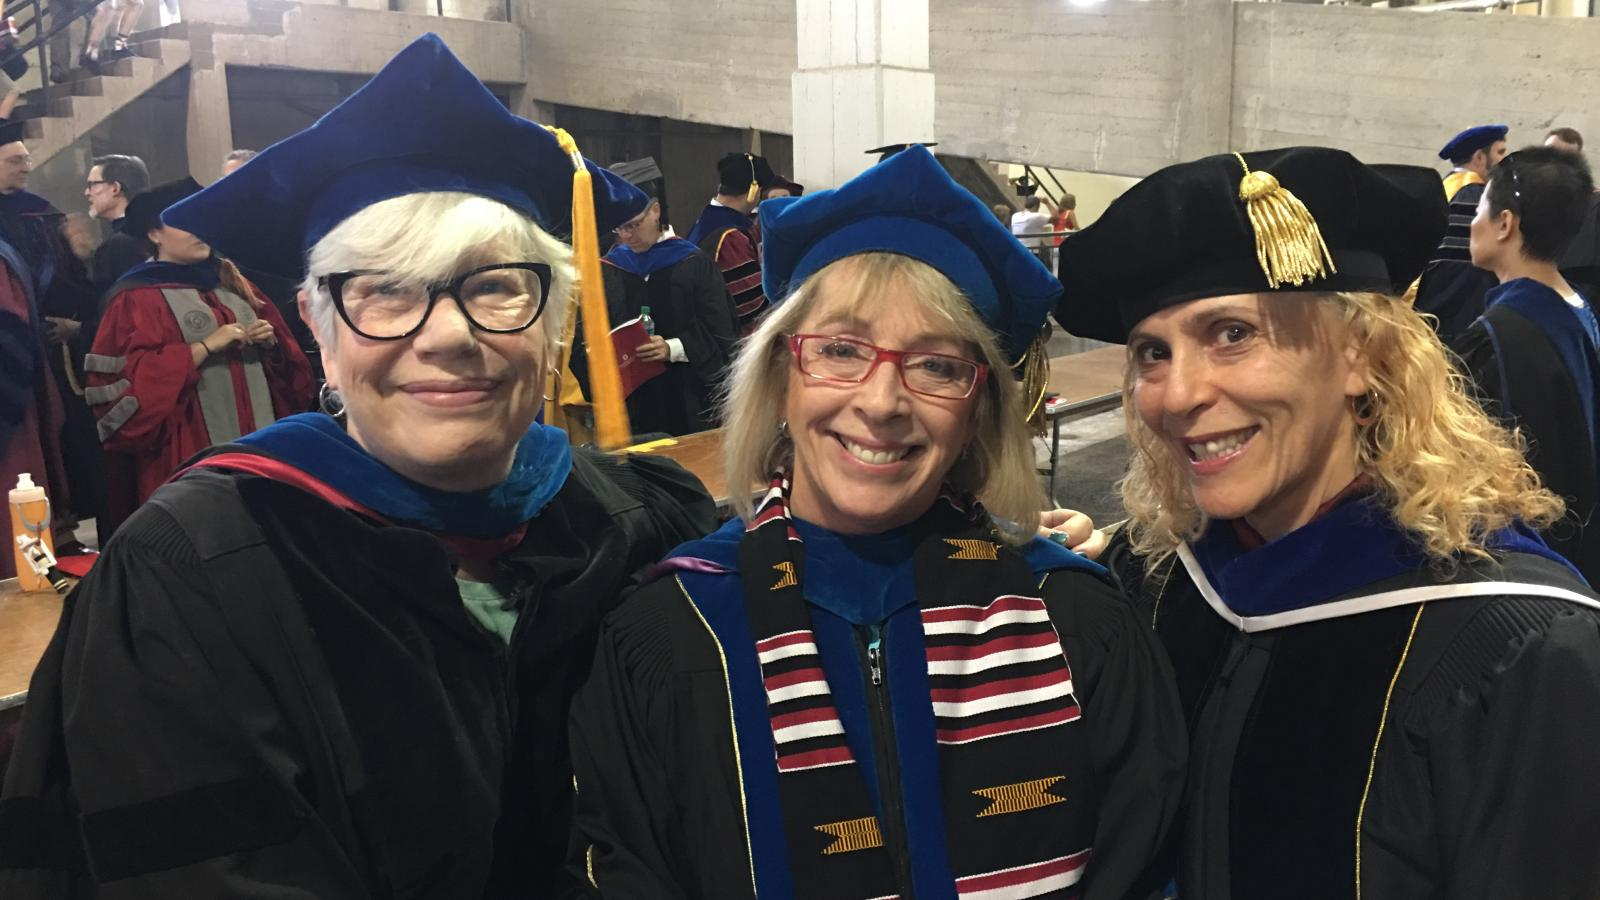 Dr.'s Smith-Shank, Ballengee Morris, and Goldberg-Miller (left to right) prepare to hood soon to be PhD alumni